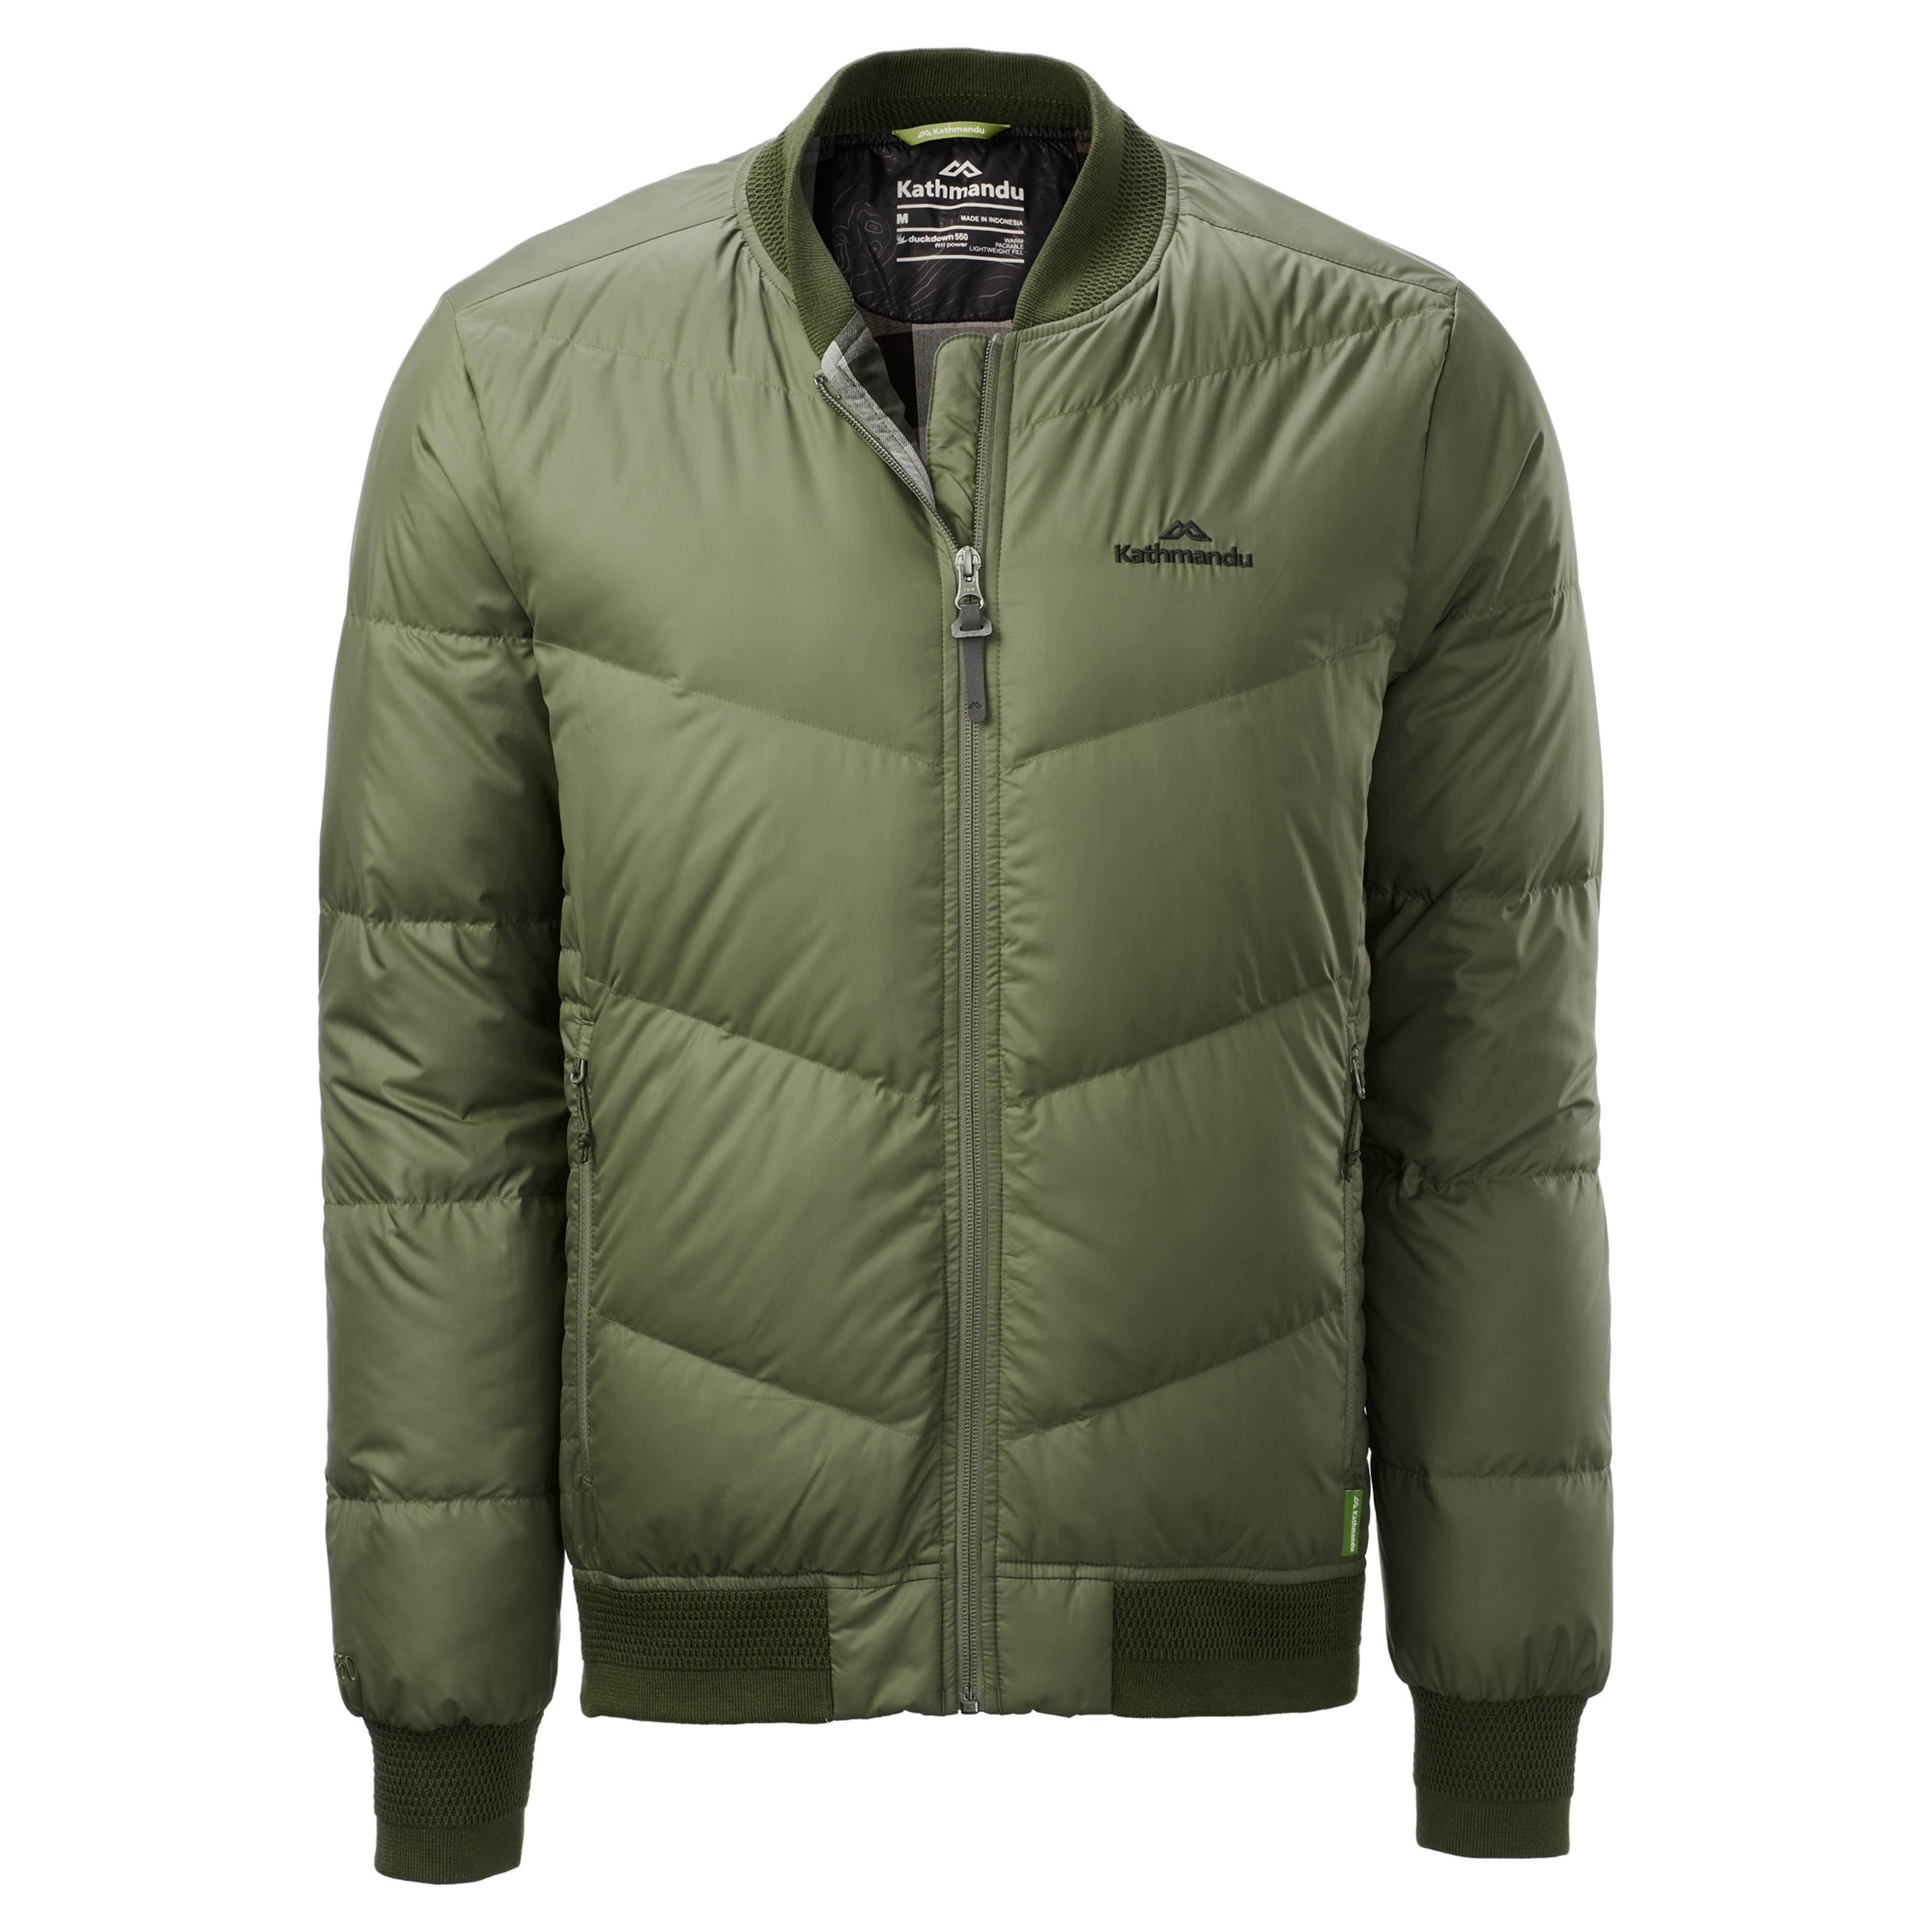 3a368ecf8f142 Kathmandu Outlet | Reduced for Clearance Travel & Adventure Gear